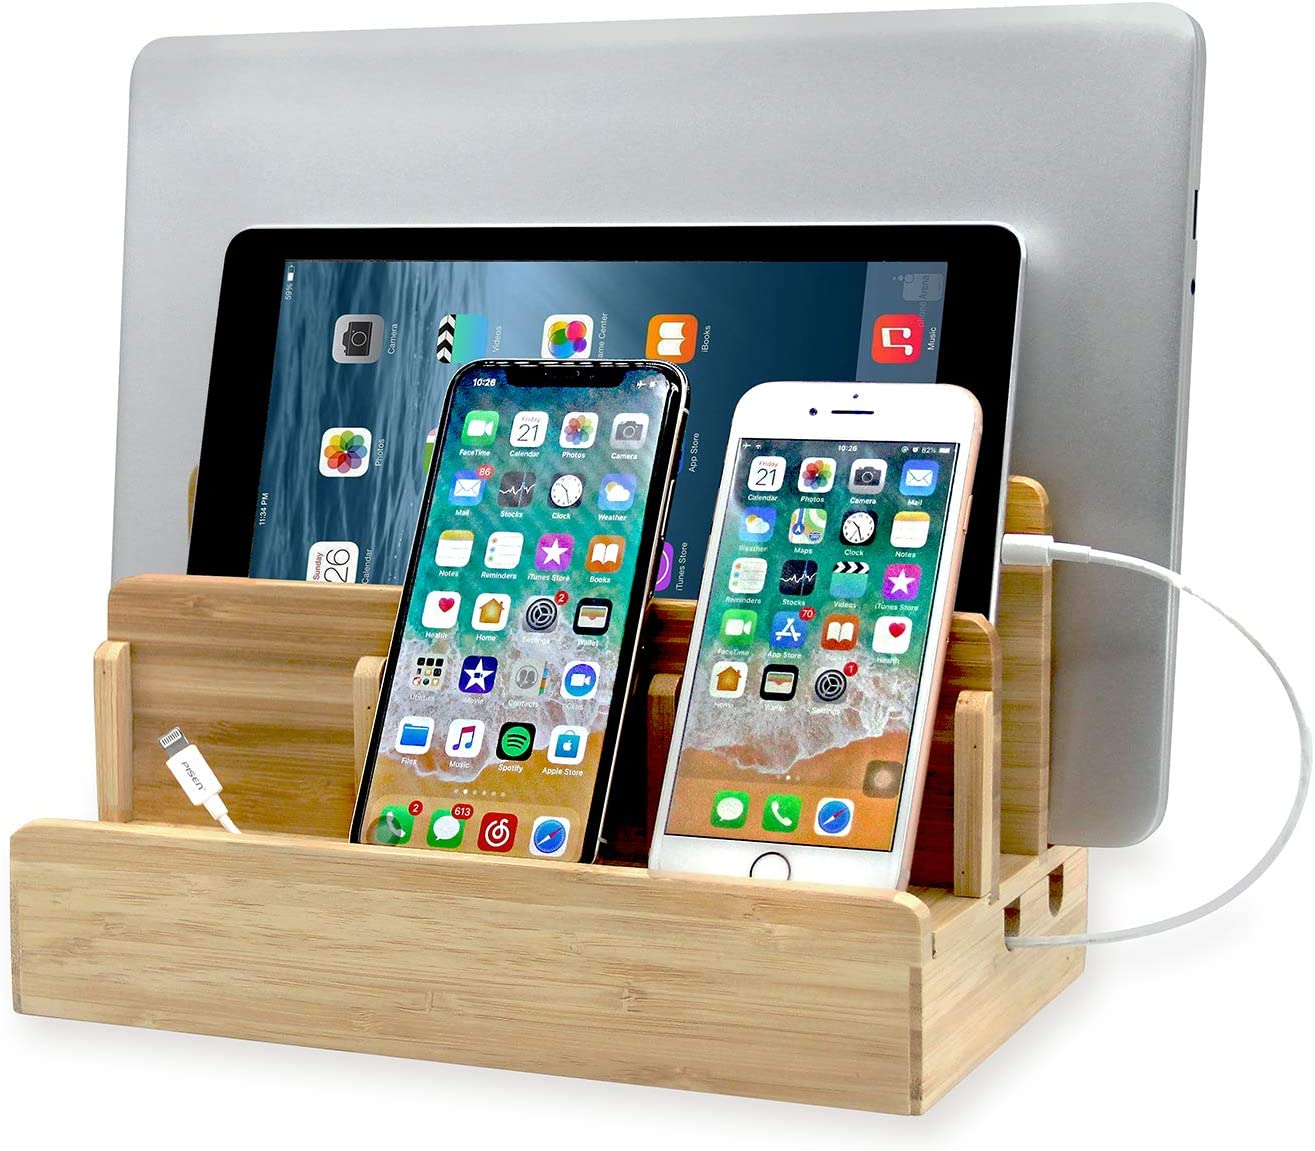 Originalidad Eco Bamboo Multi-Device Charging Station Dock, Desk Docking Station Organizer for Laptops, Tablets, and Phones